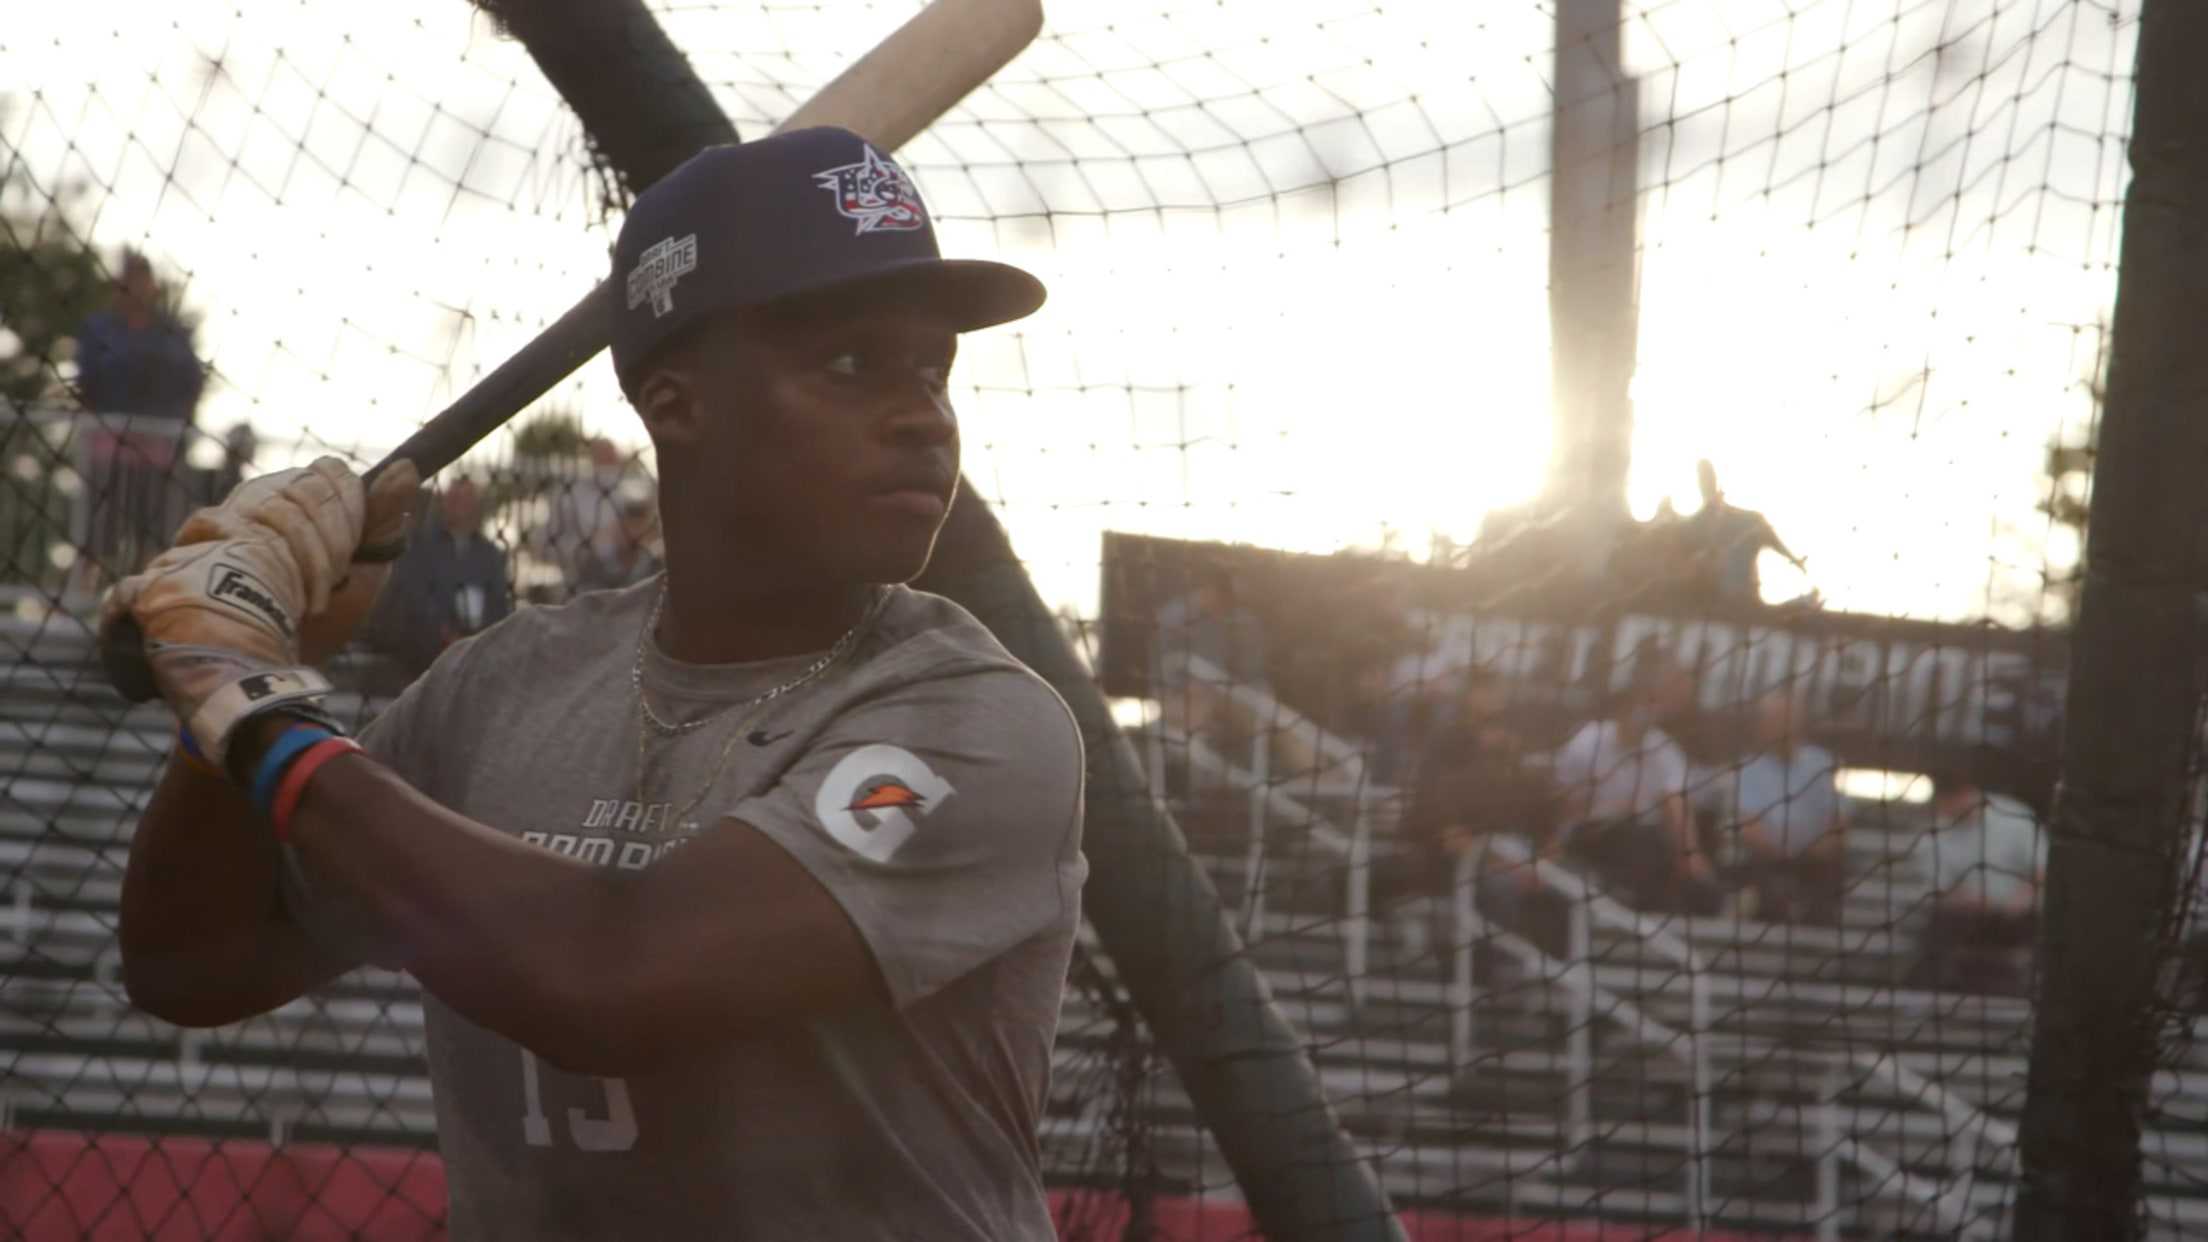 Spikes takes some hacks